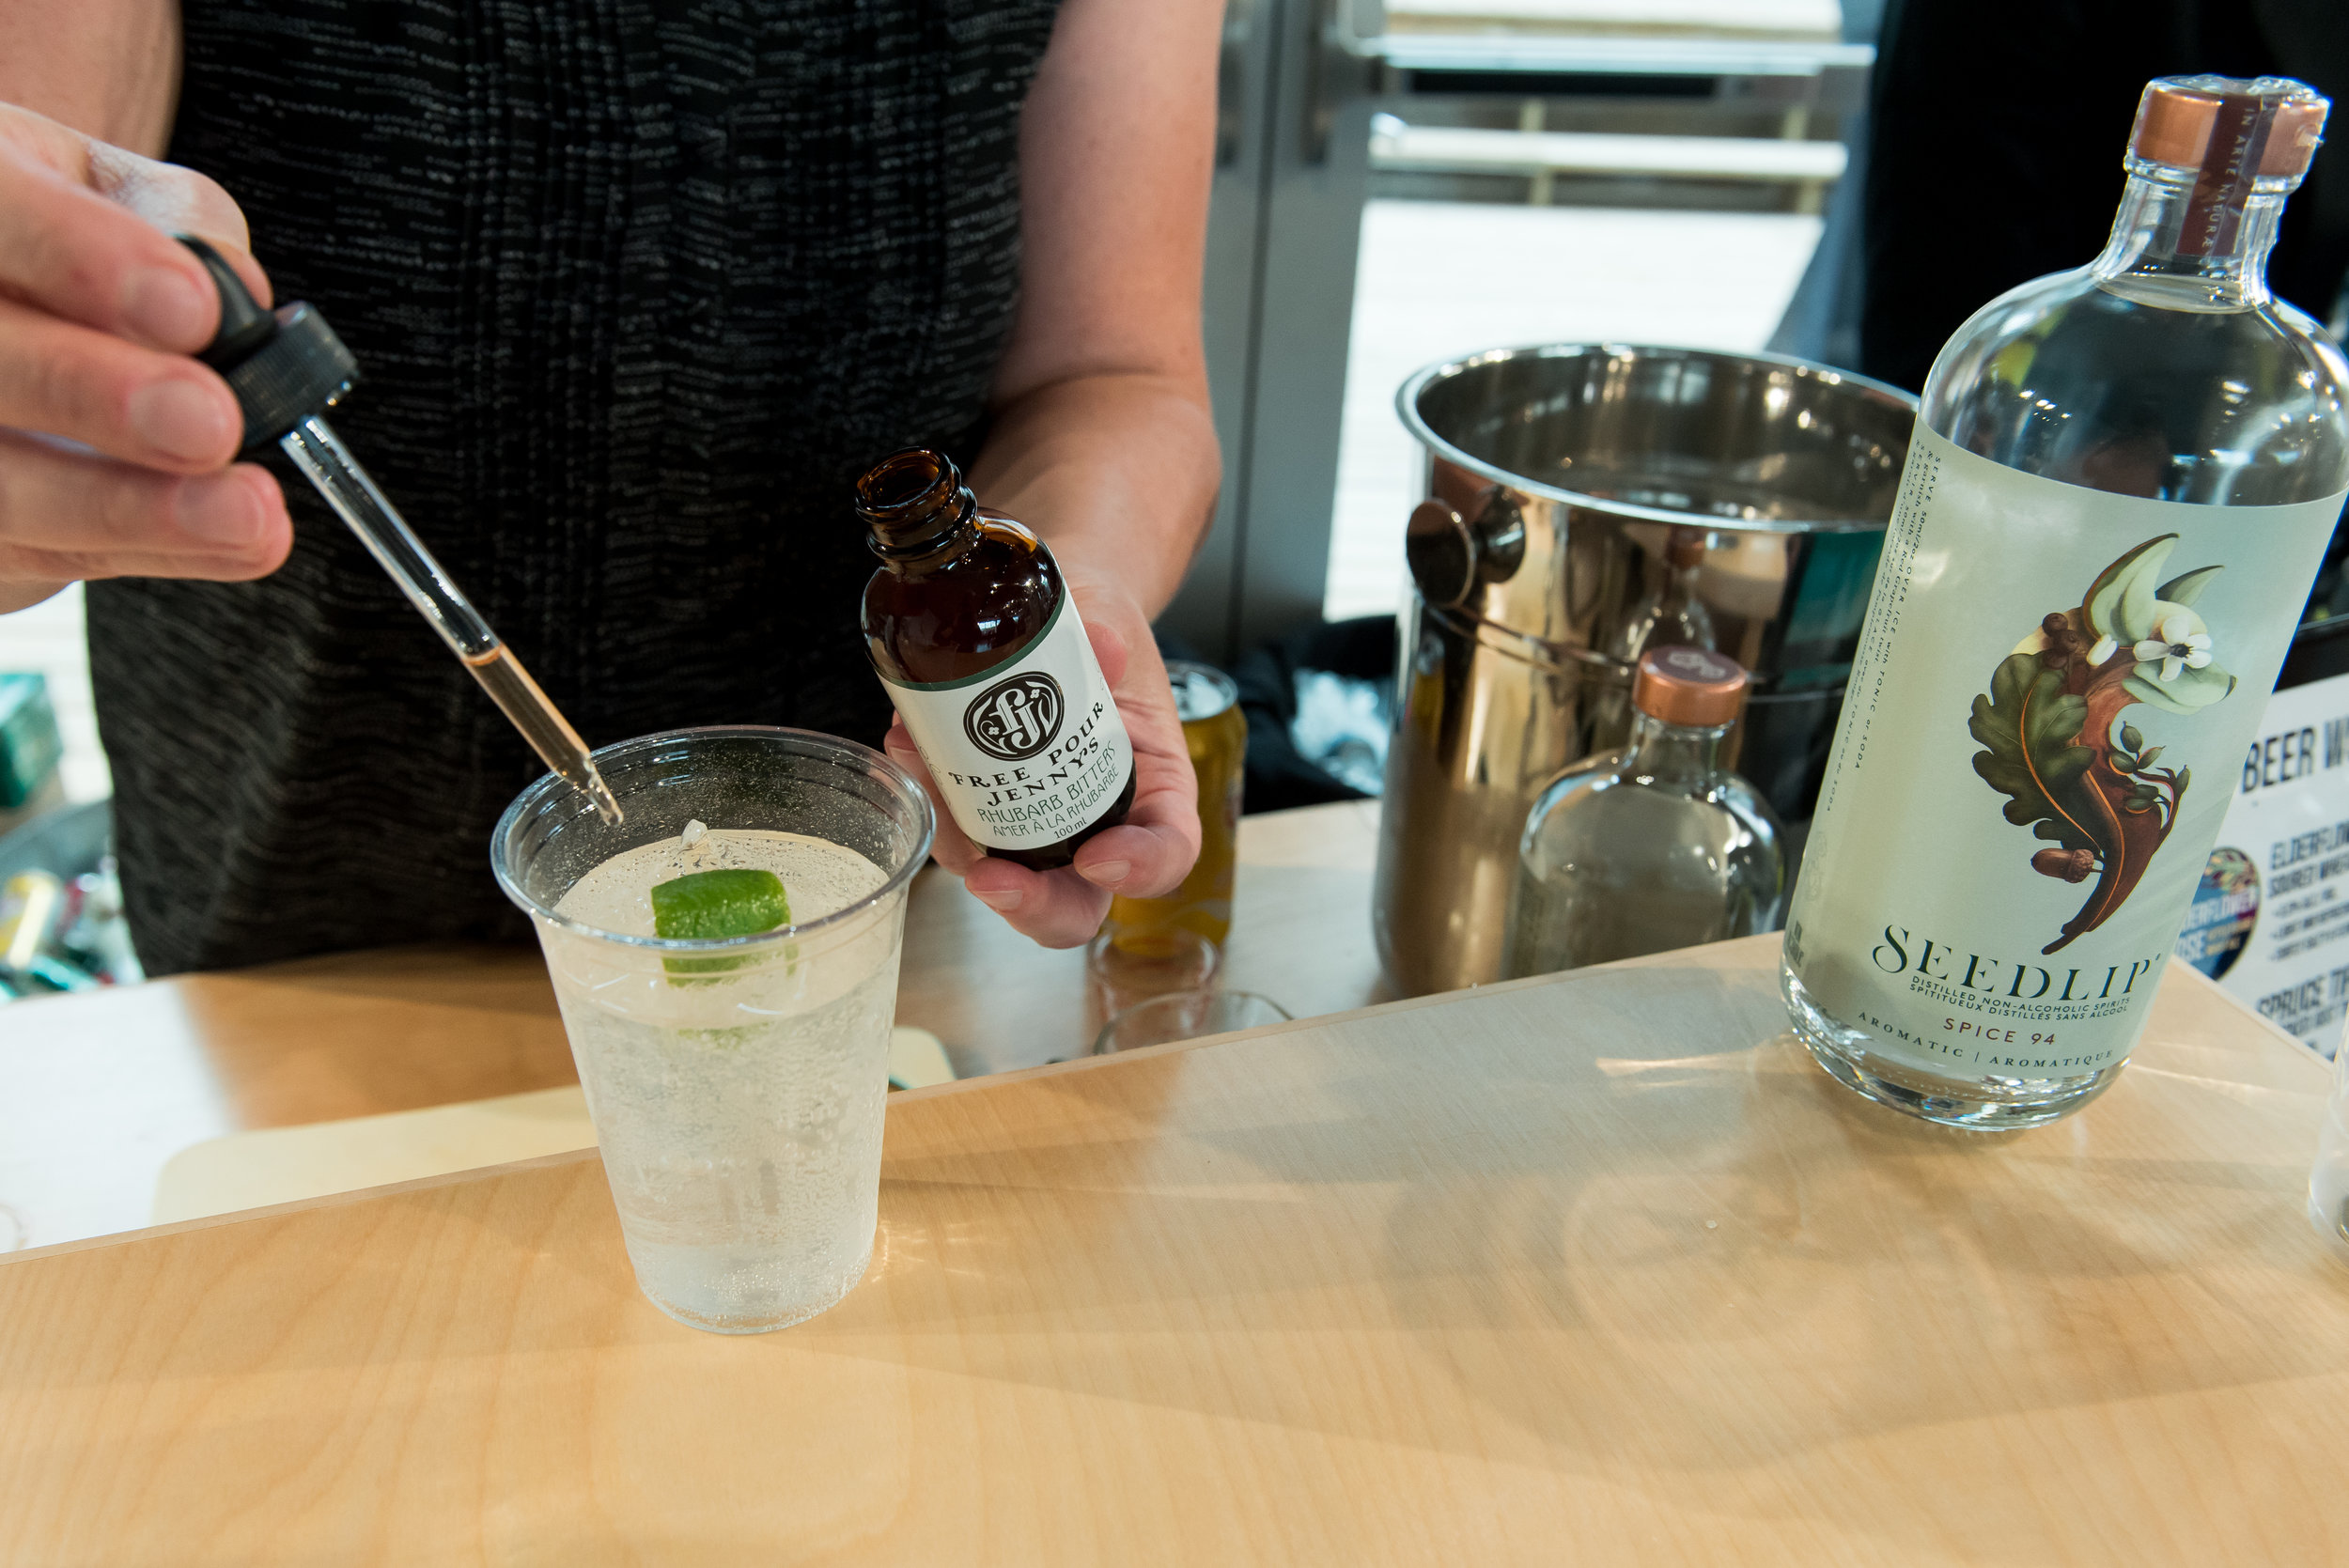 Making a mocktail with Seedlip Spice, tonic, and FPJ Rhubarb Bitters at the Yukon Culinary Festival, August 2019